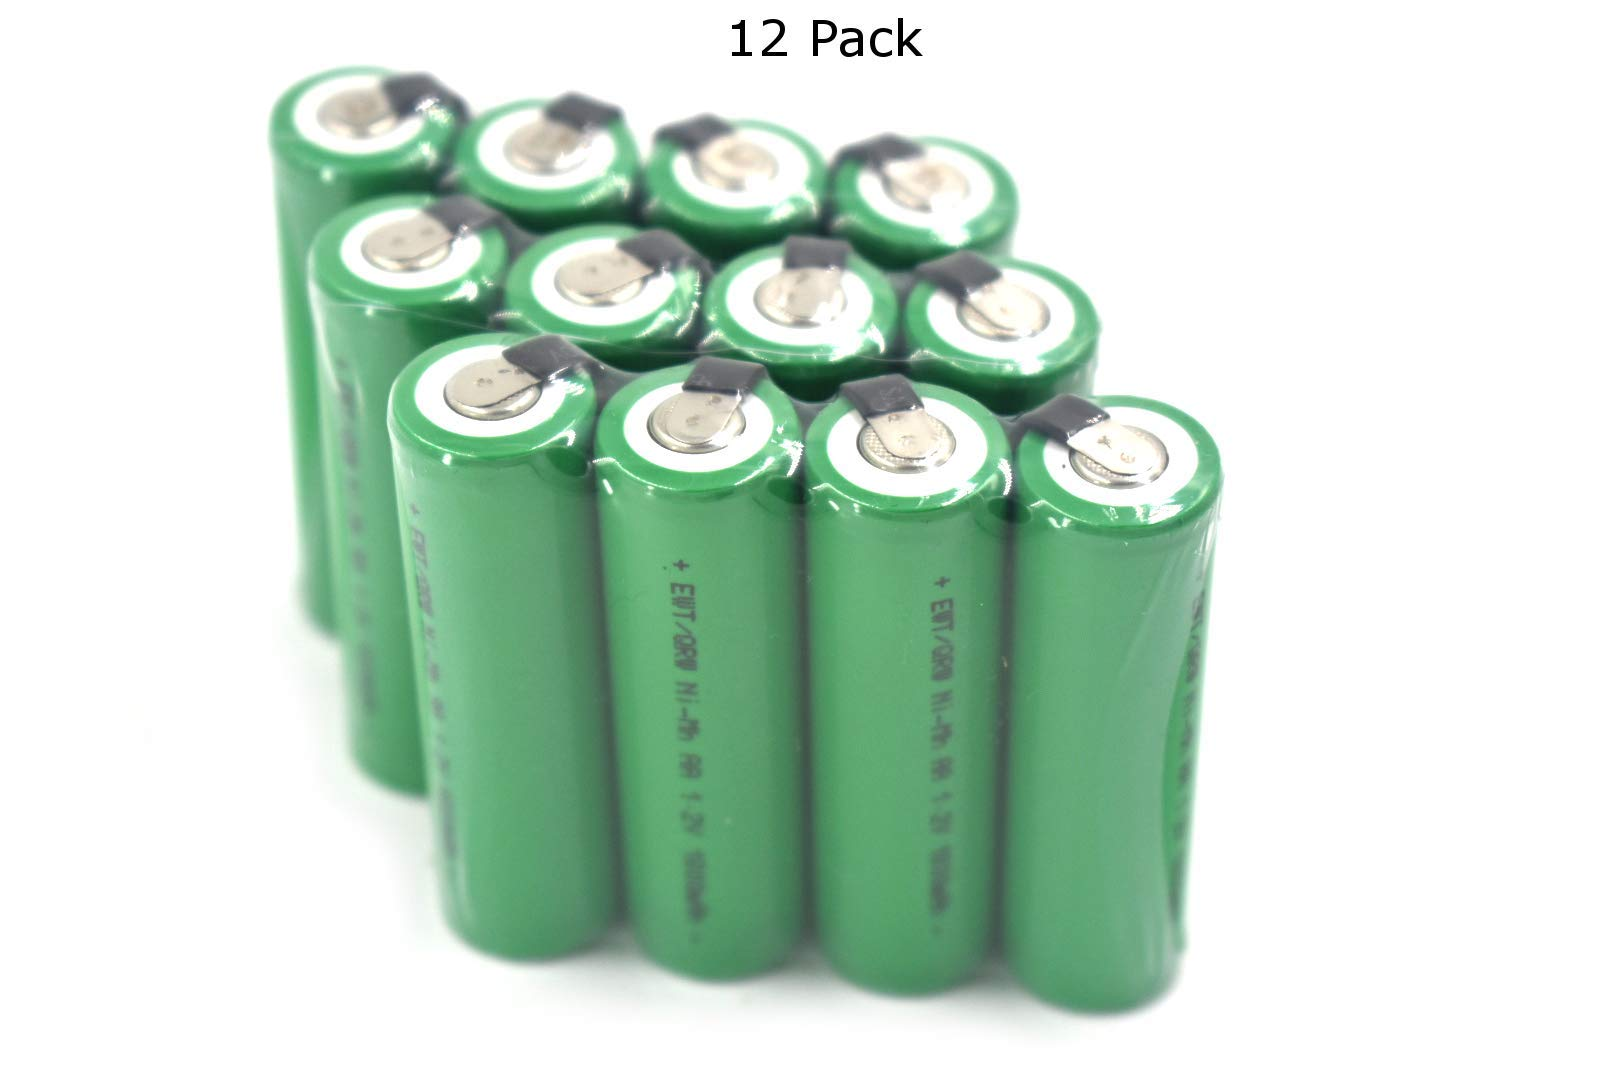 Contractor Pack - 12 Pcs - Nimh 1.2V AA 1800 mAh Flat top Battery with Solder Tabs for Cordless Shavers, Flossers and Battery Packs